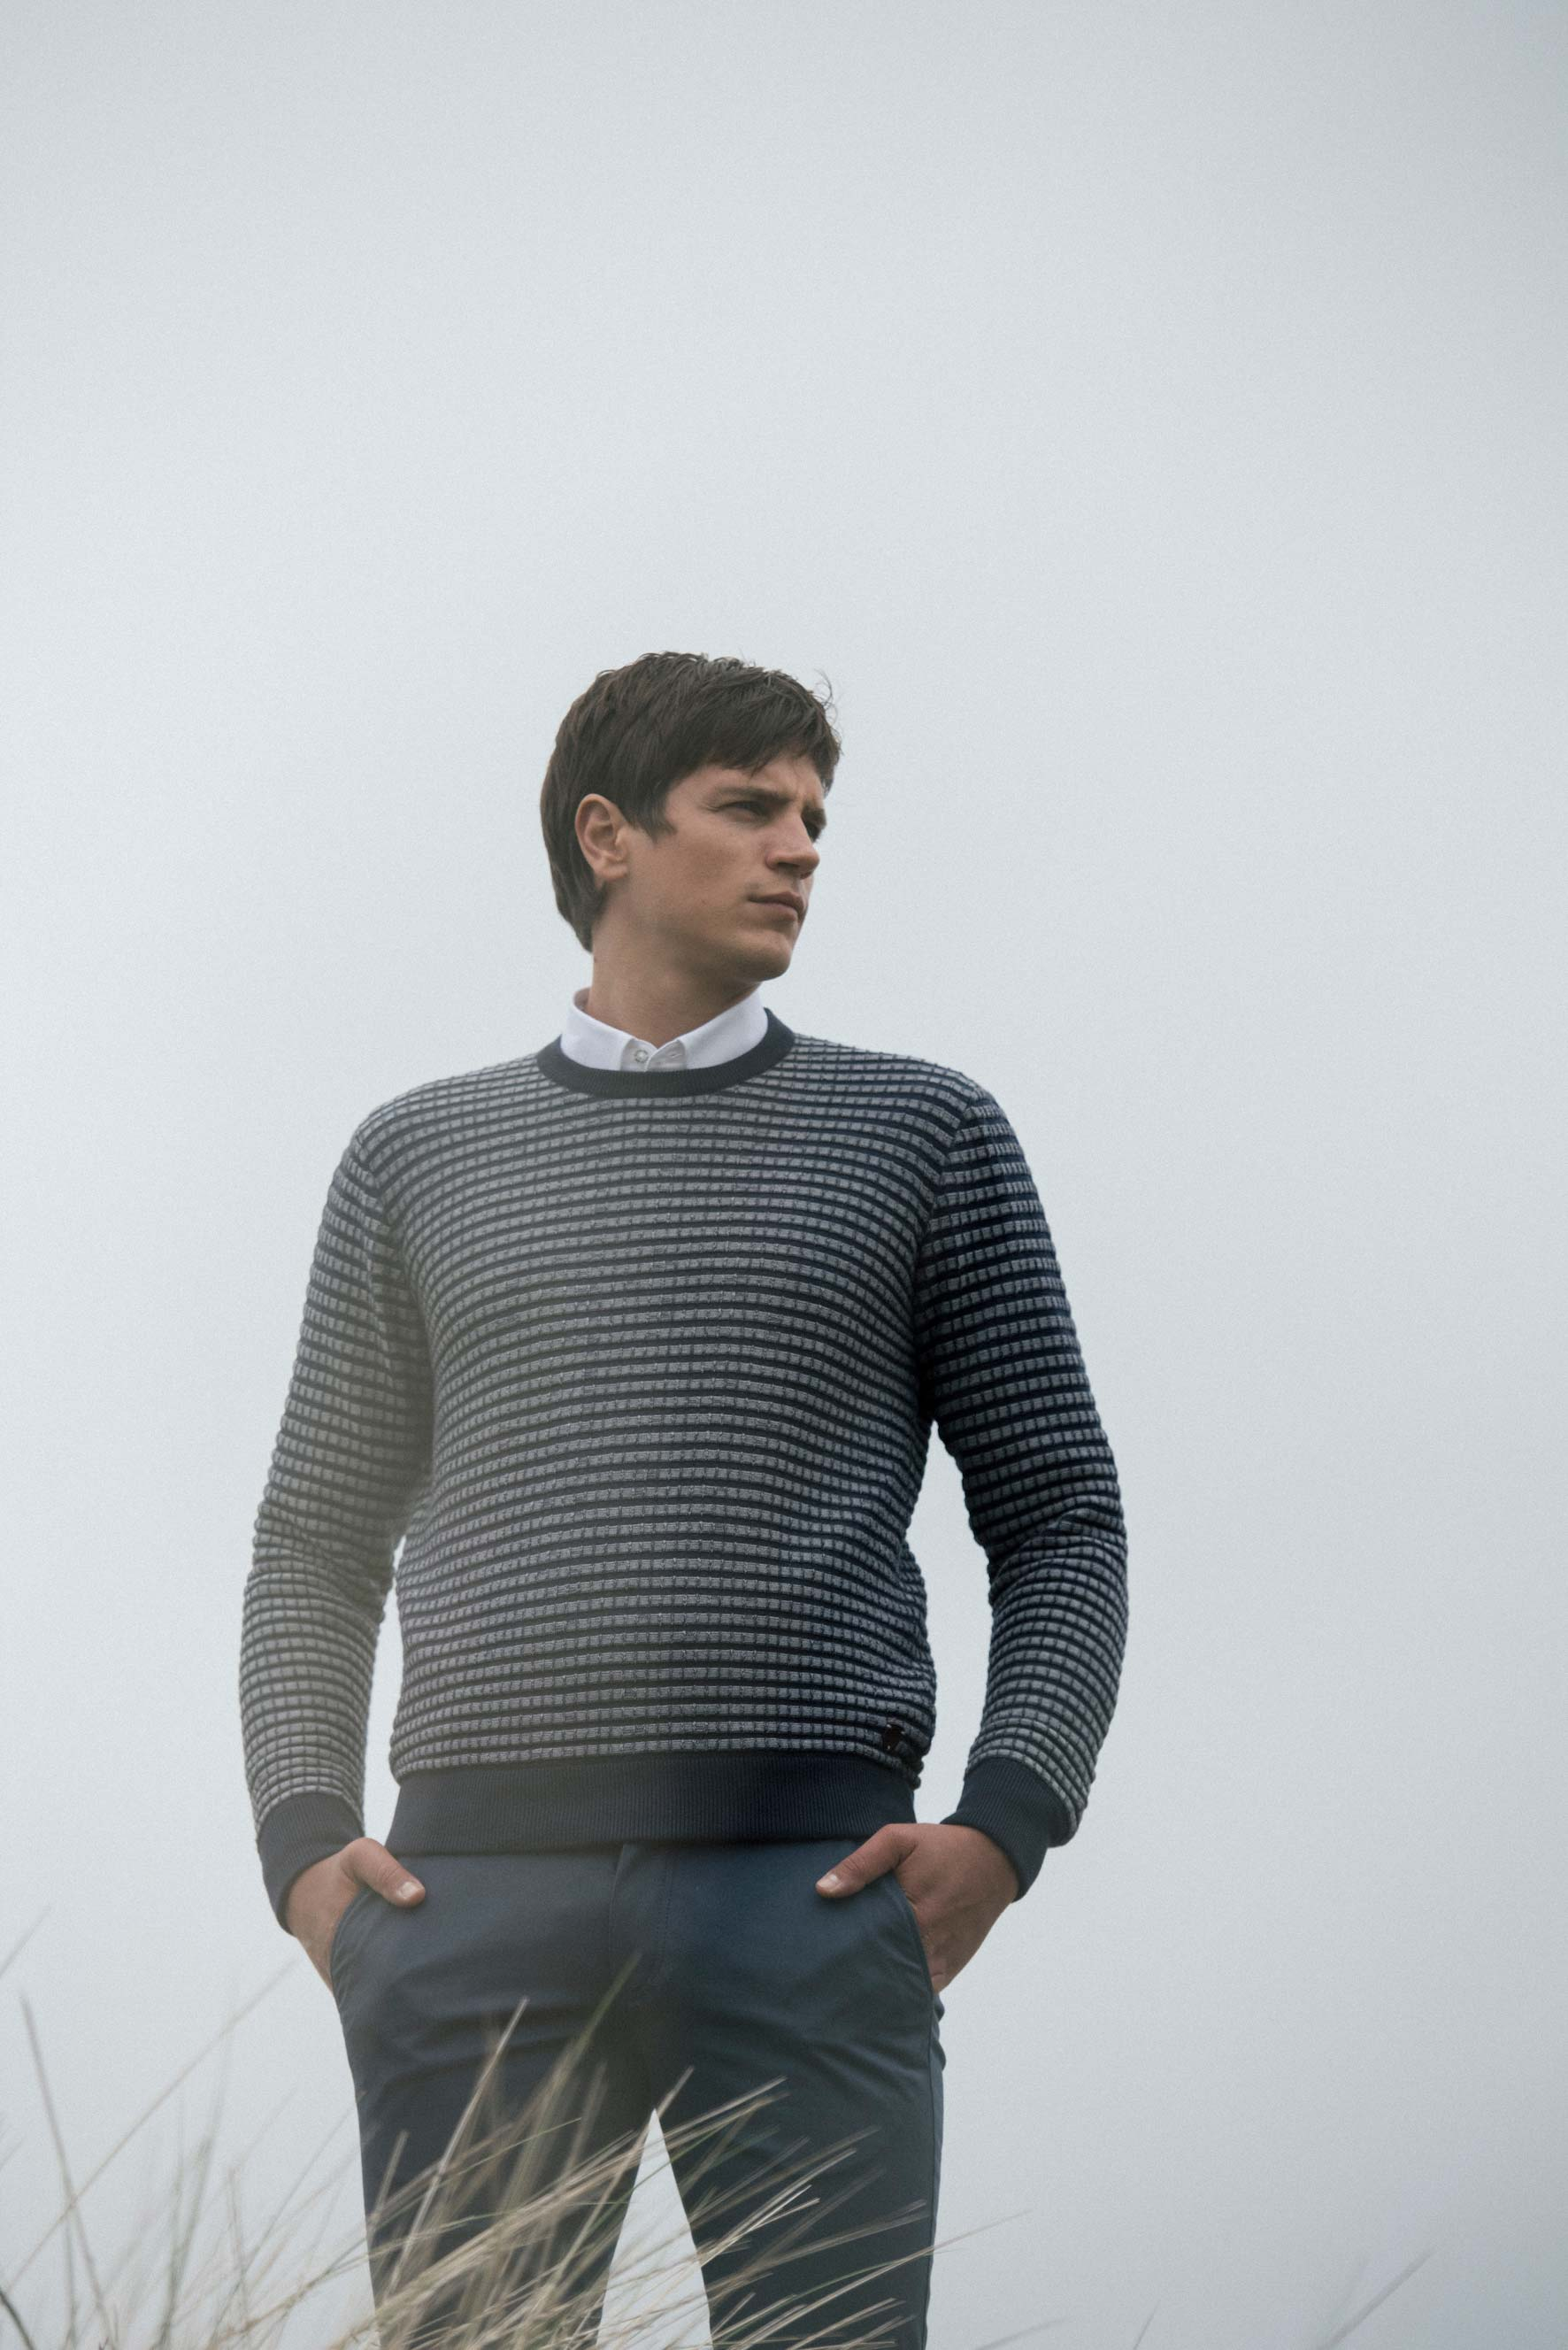 Knitwear - You can never have too much knitwear. Our collection includes every style you could. With styles ranging from zip throughs and v-necks to rollnecks and sweats, you'll be covered for all occasions, whether it's a chunky cardigan, or a lightweight crew neck for those warmer days.BARBOUR | GABICCI | GANT | FYNCH HATTON